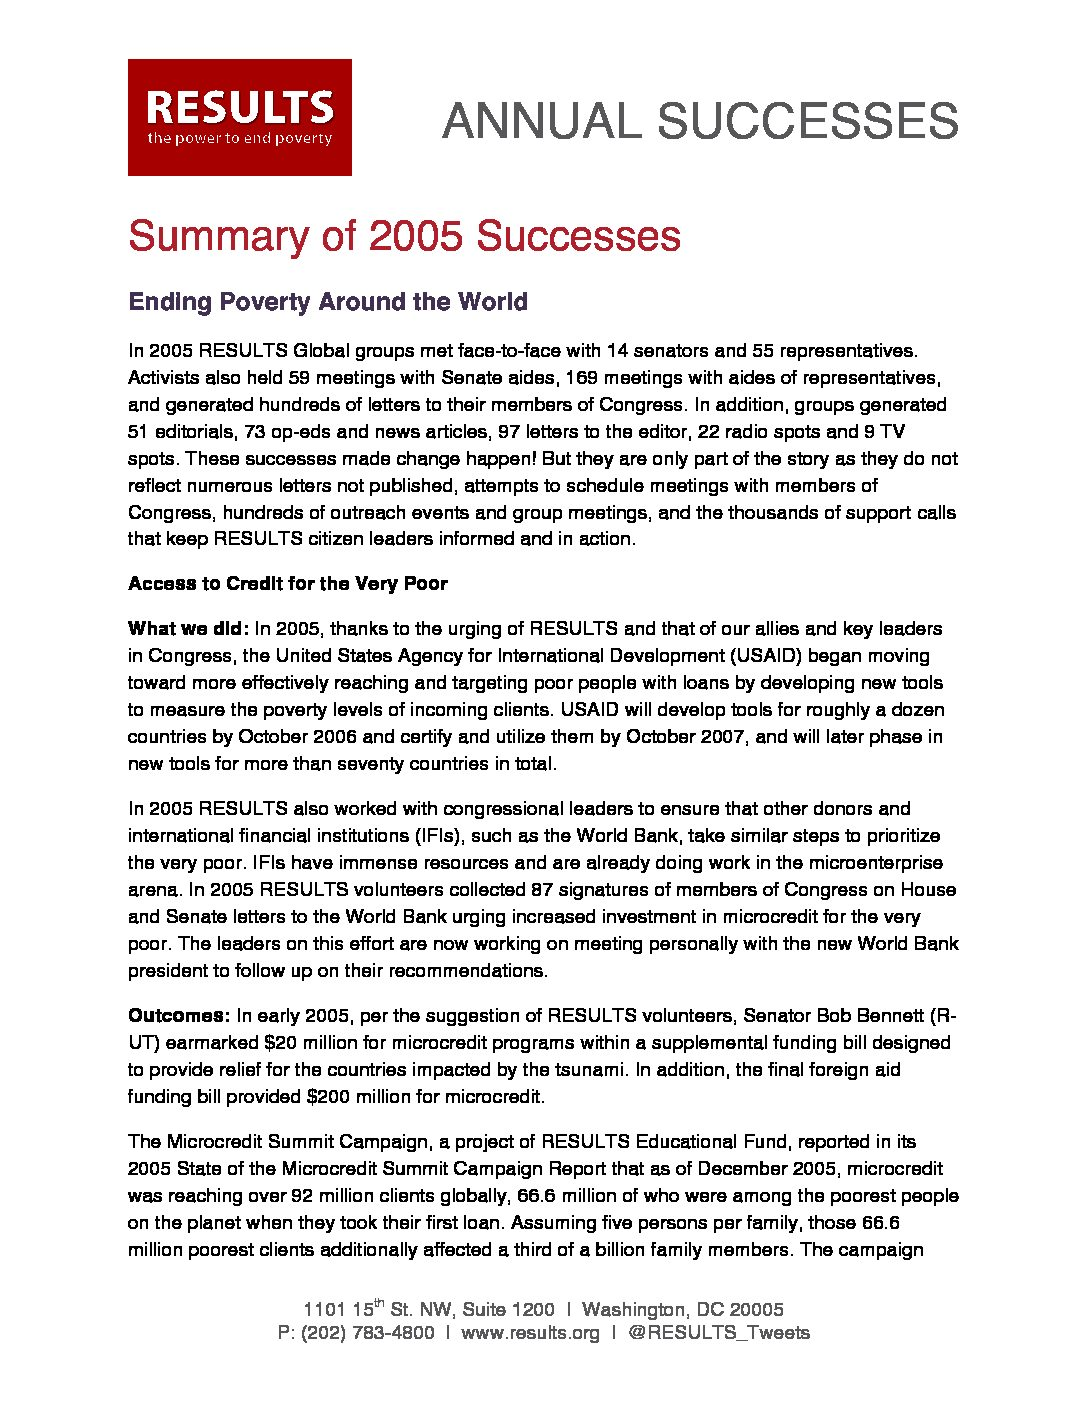 Annual Successes 2005